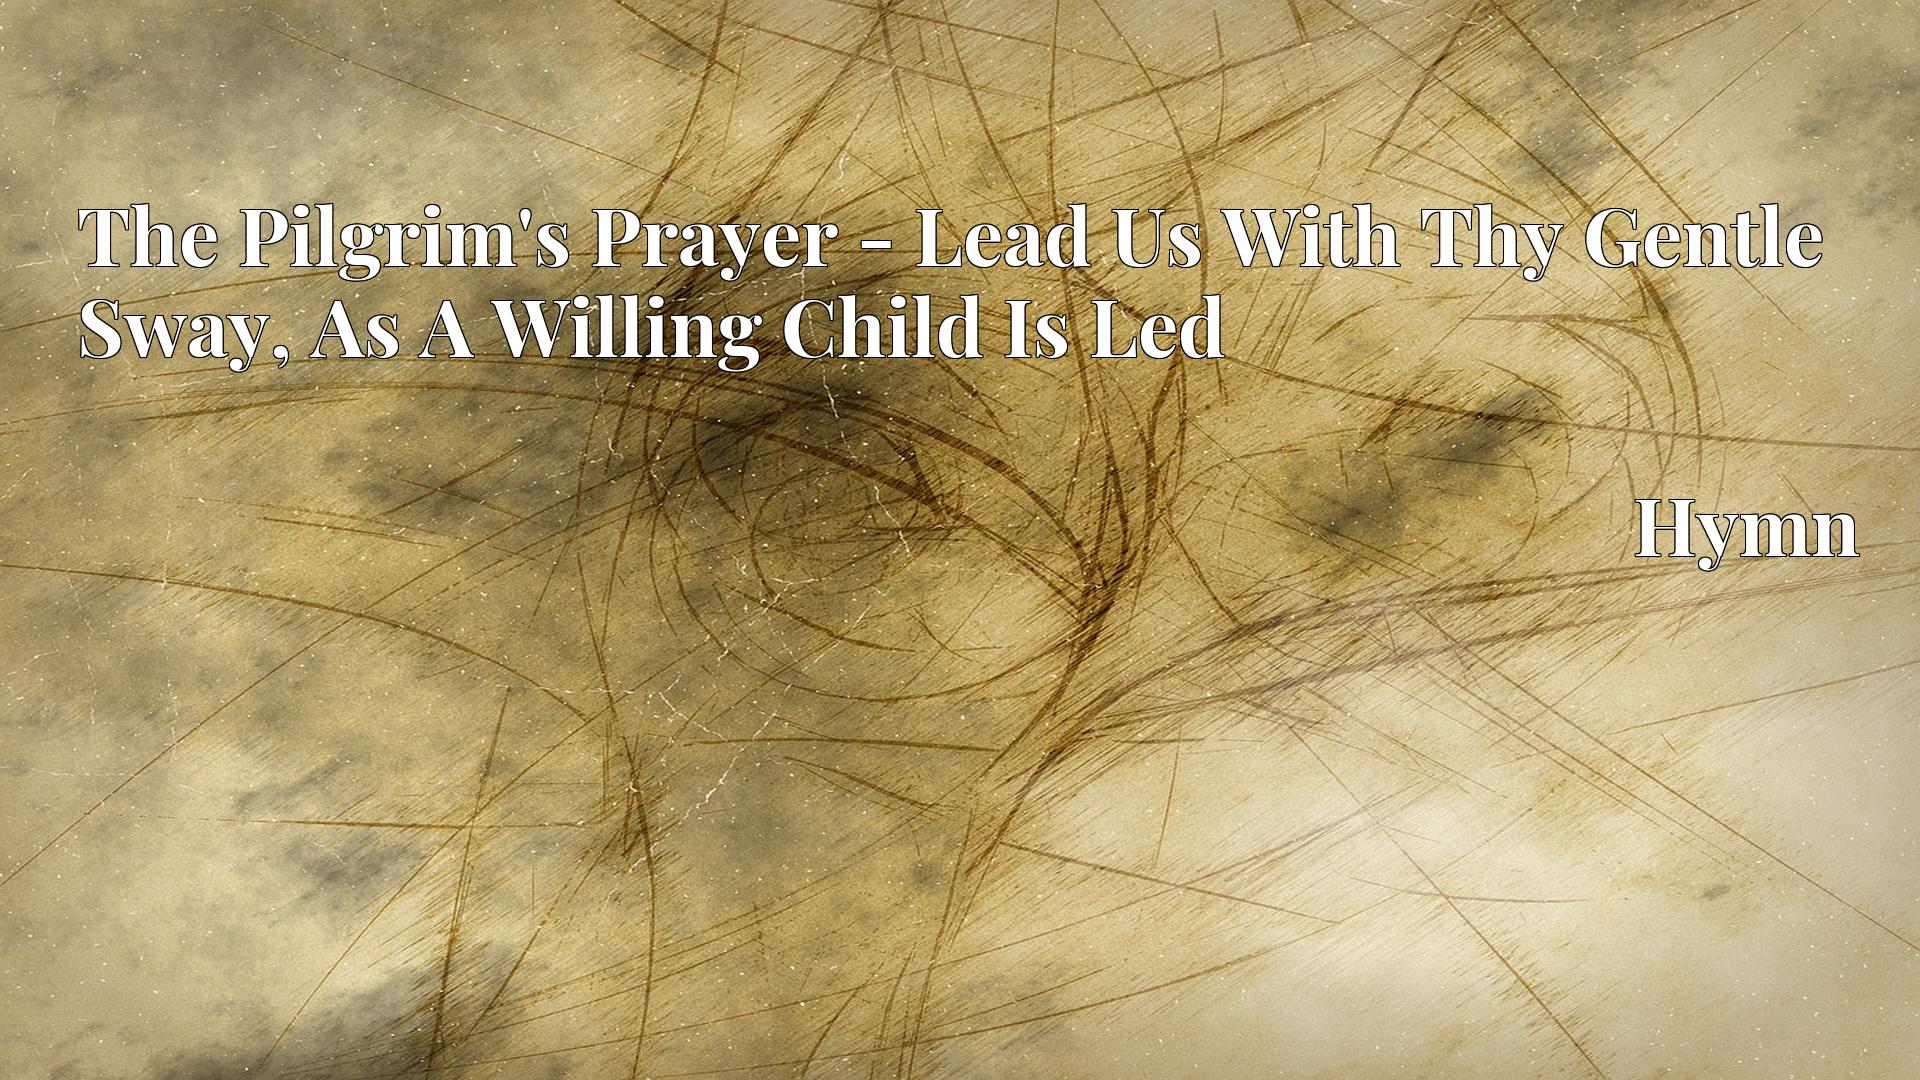 The Pilgrim's Prayer - Lead Us With Thy Gentle Sway, As A Willing Child Is Led - Hymn